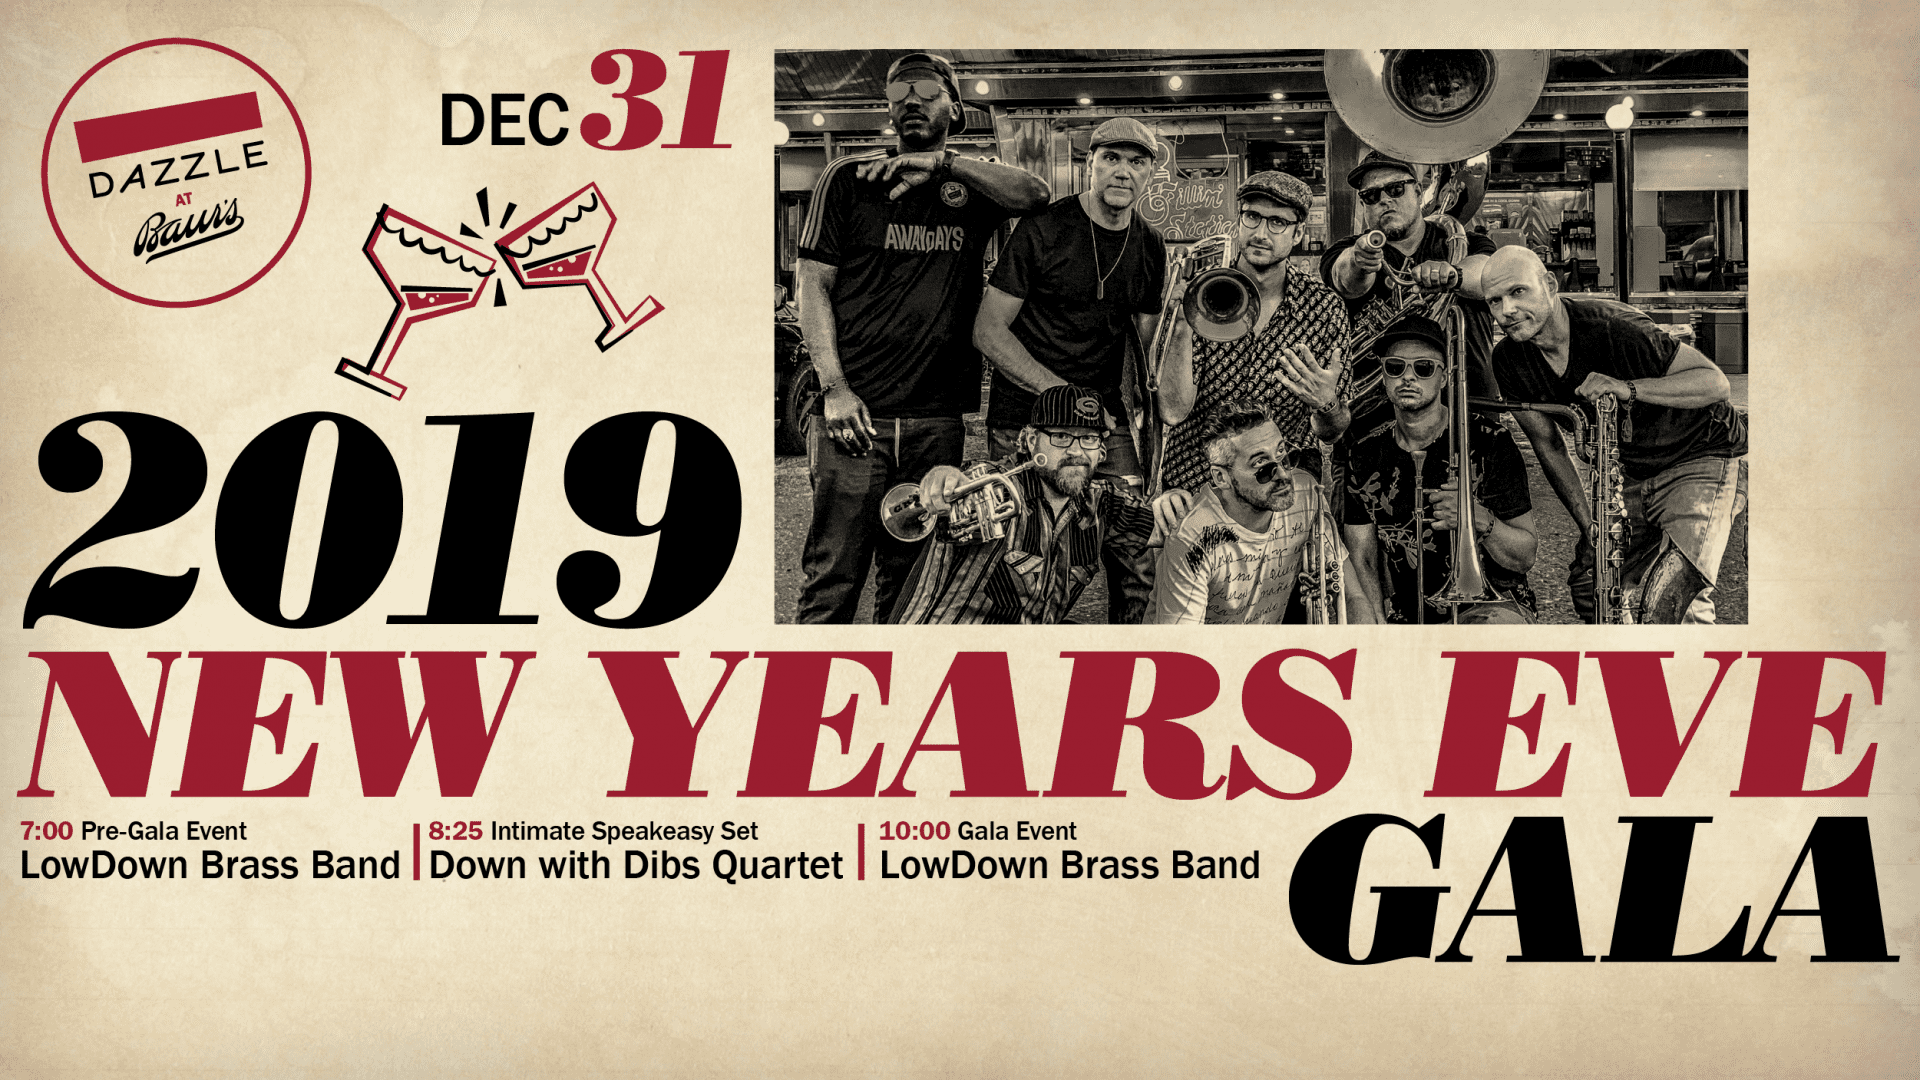 New Year's Eve Gala with LowDown Brass Band